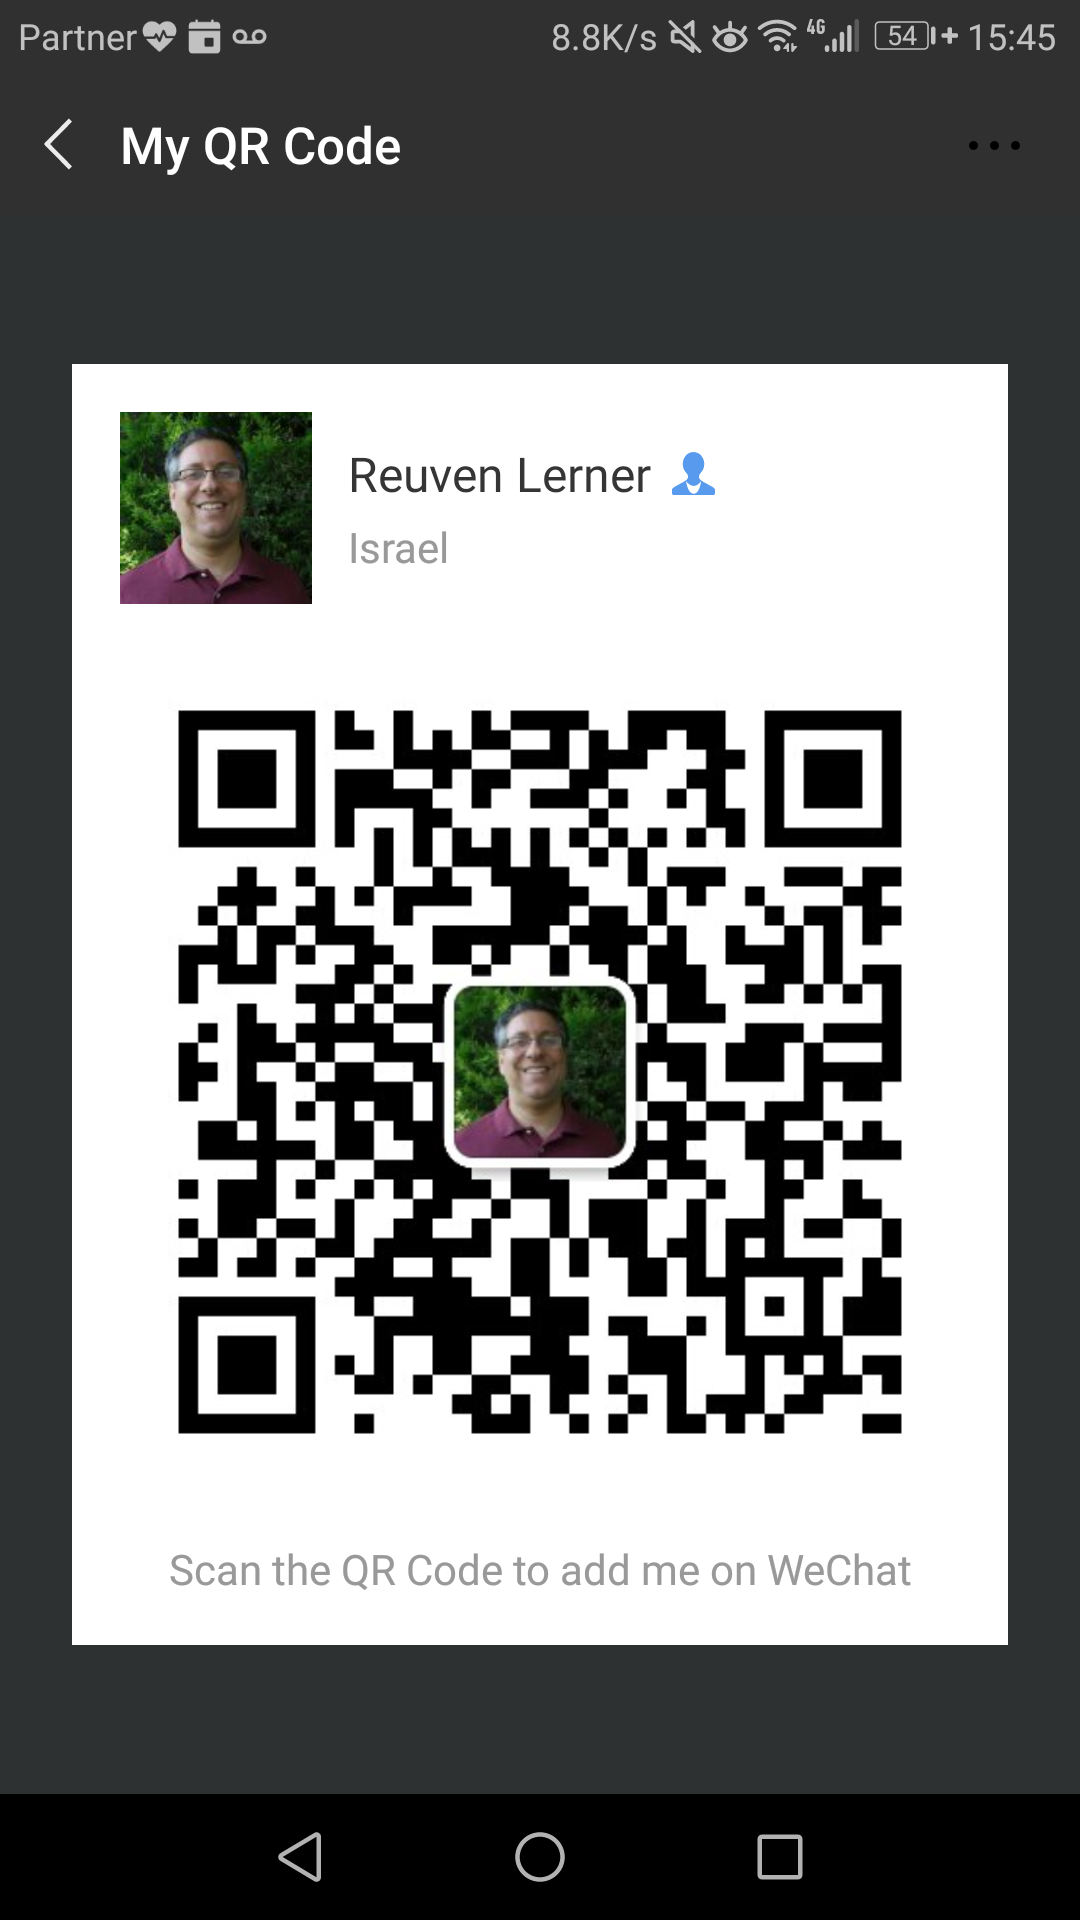 The foreigner's guide to WeChat payments in China — Reuven